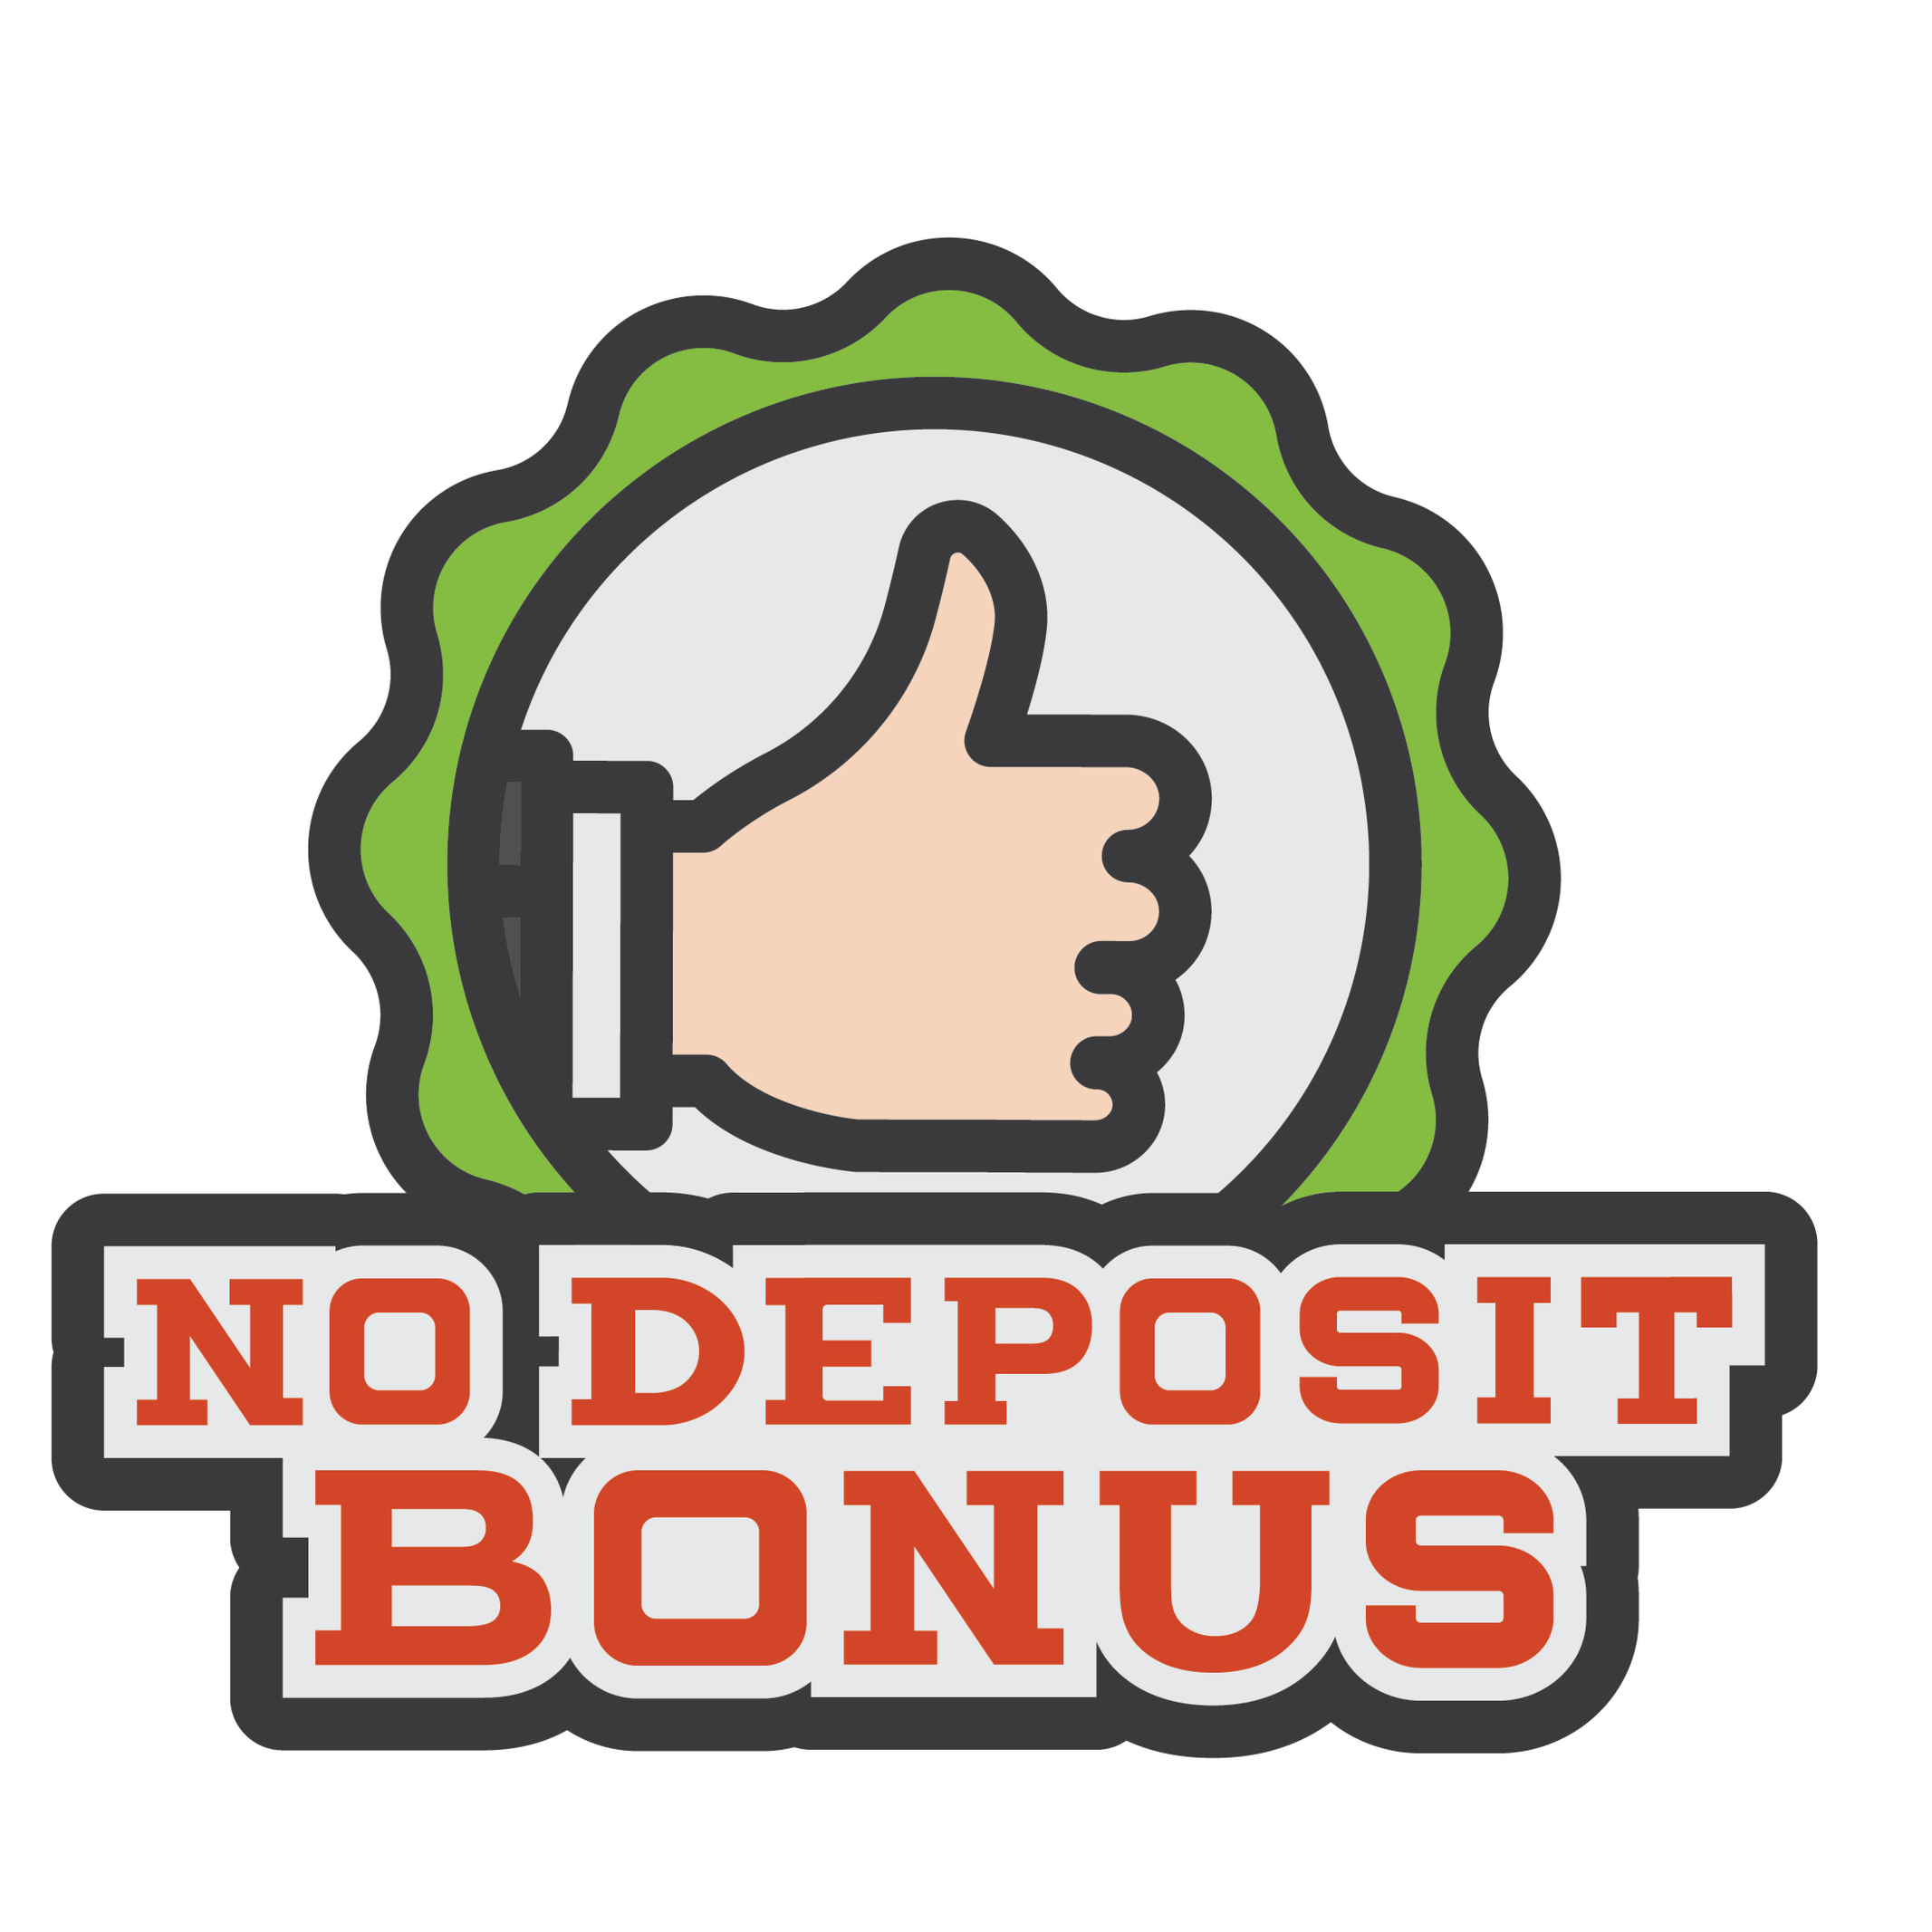 No Deposit Bonuses Now Come as Free Spins